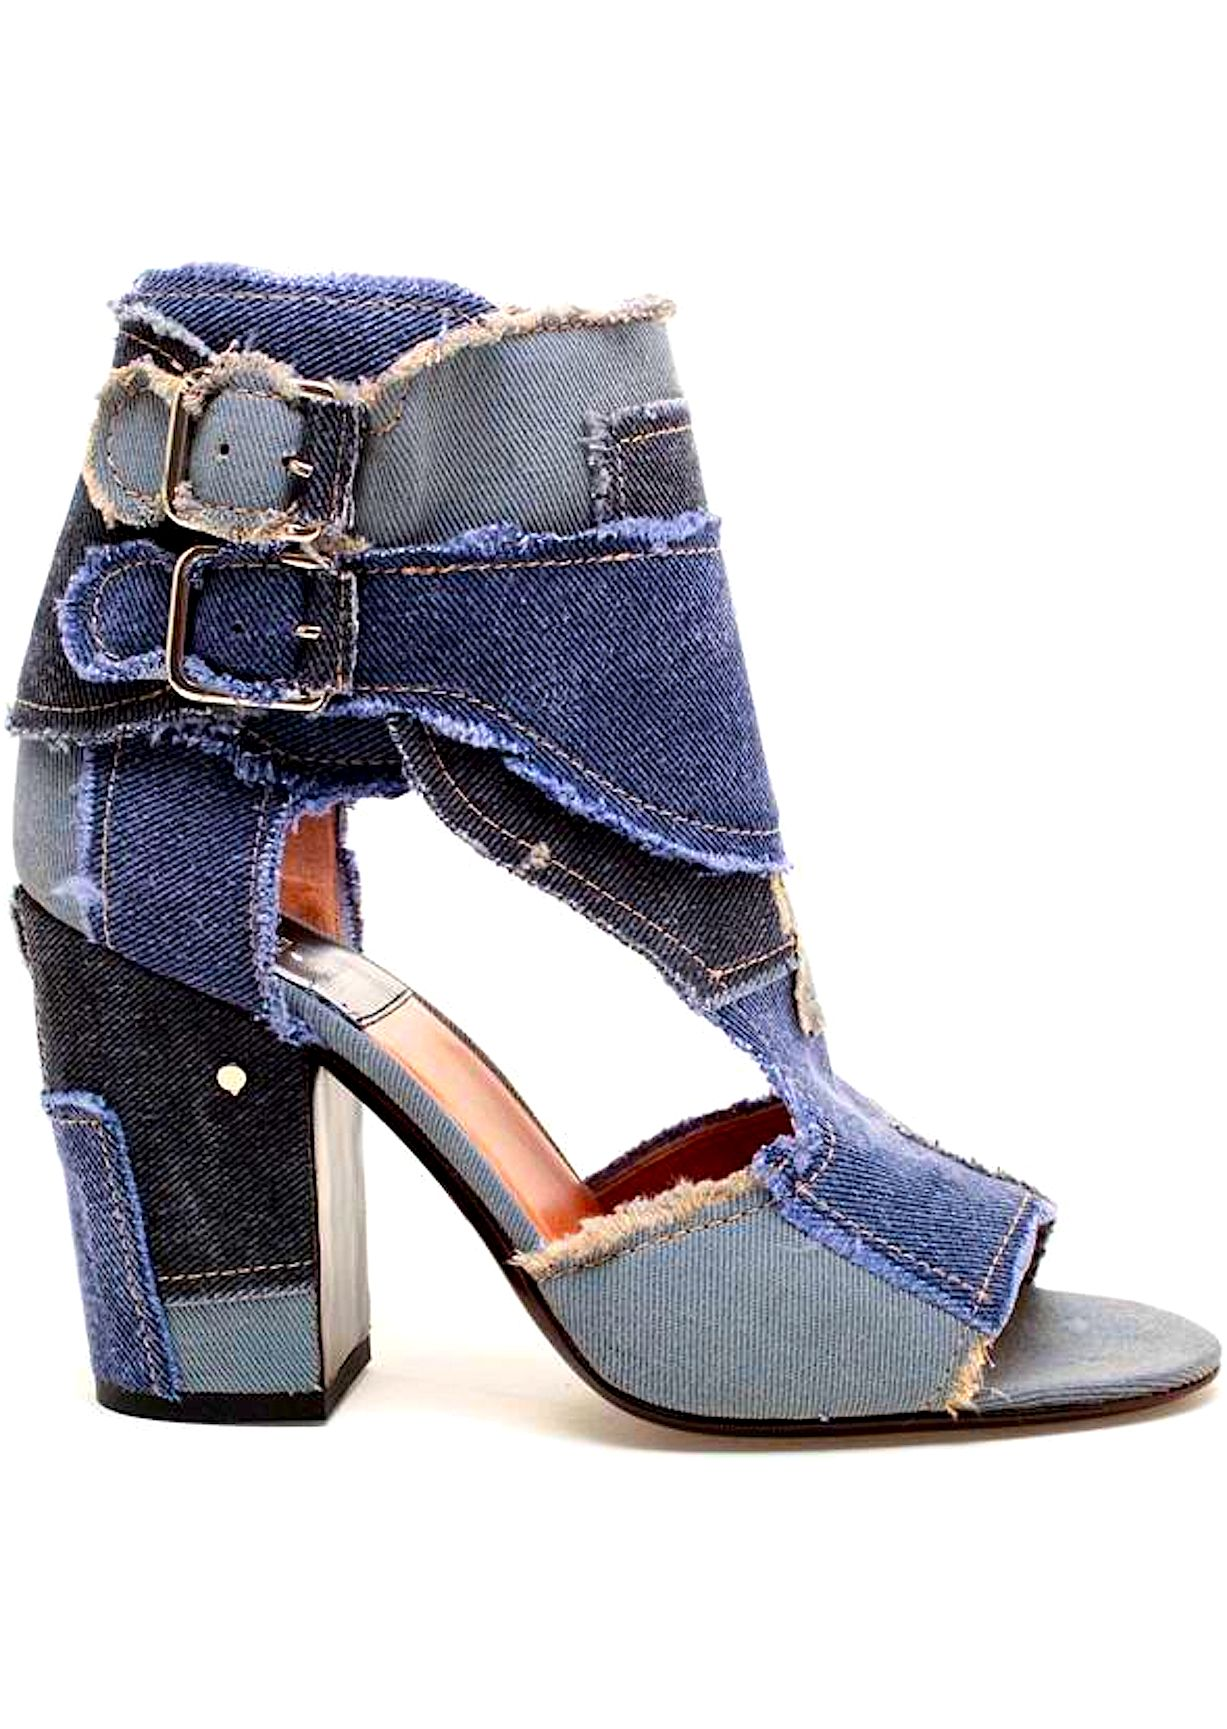 Laurence Dacade | @ shoes ( booties ) | SHOES......uff9a O u221a u4e47 u2665 | Pinterest | Denim heels Shoe ...